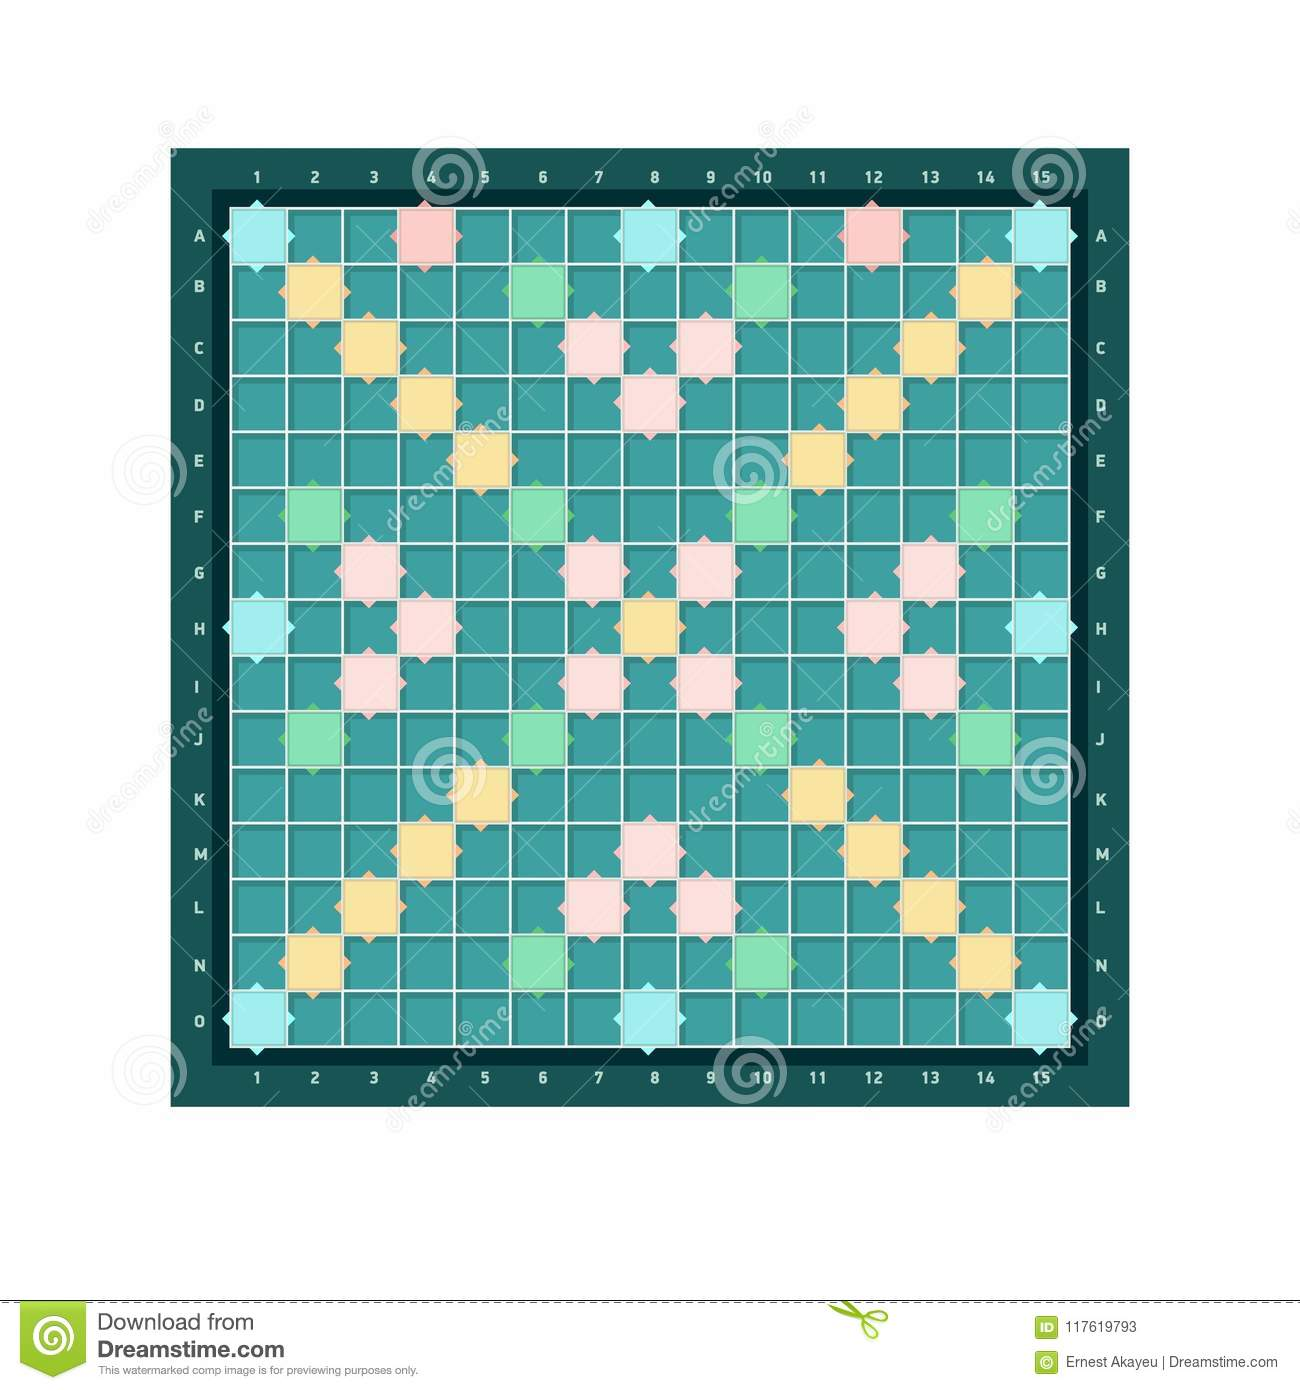 Scrabble Or Erudite Square Board Design With Grid Of Blank Colorful Cells Popular Intellectual Tabletop